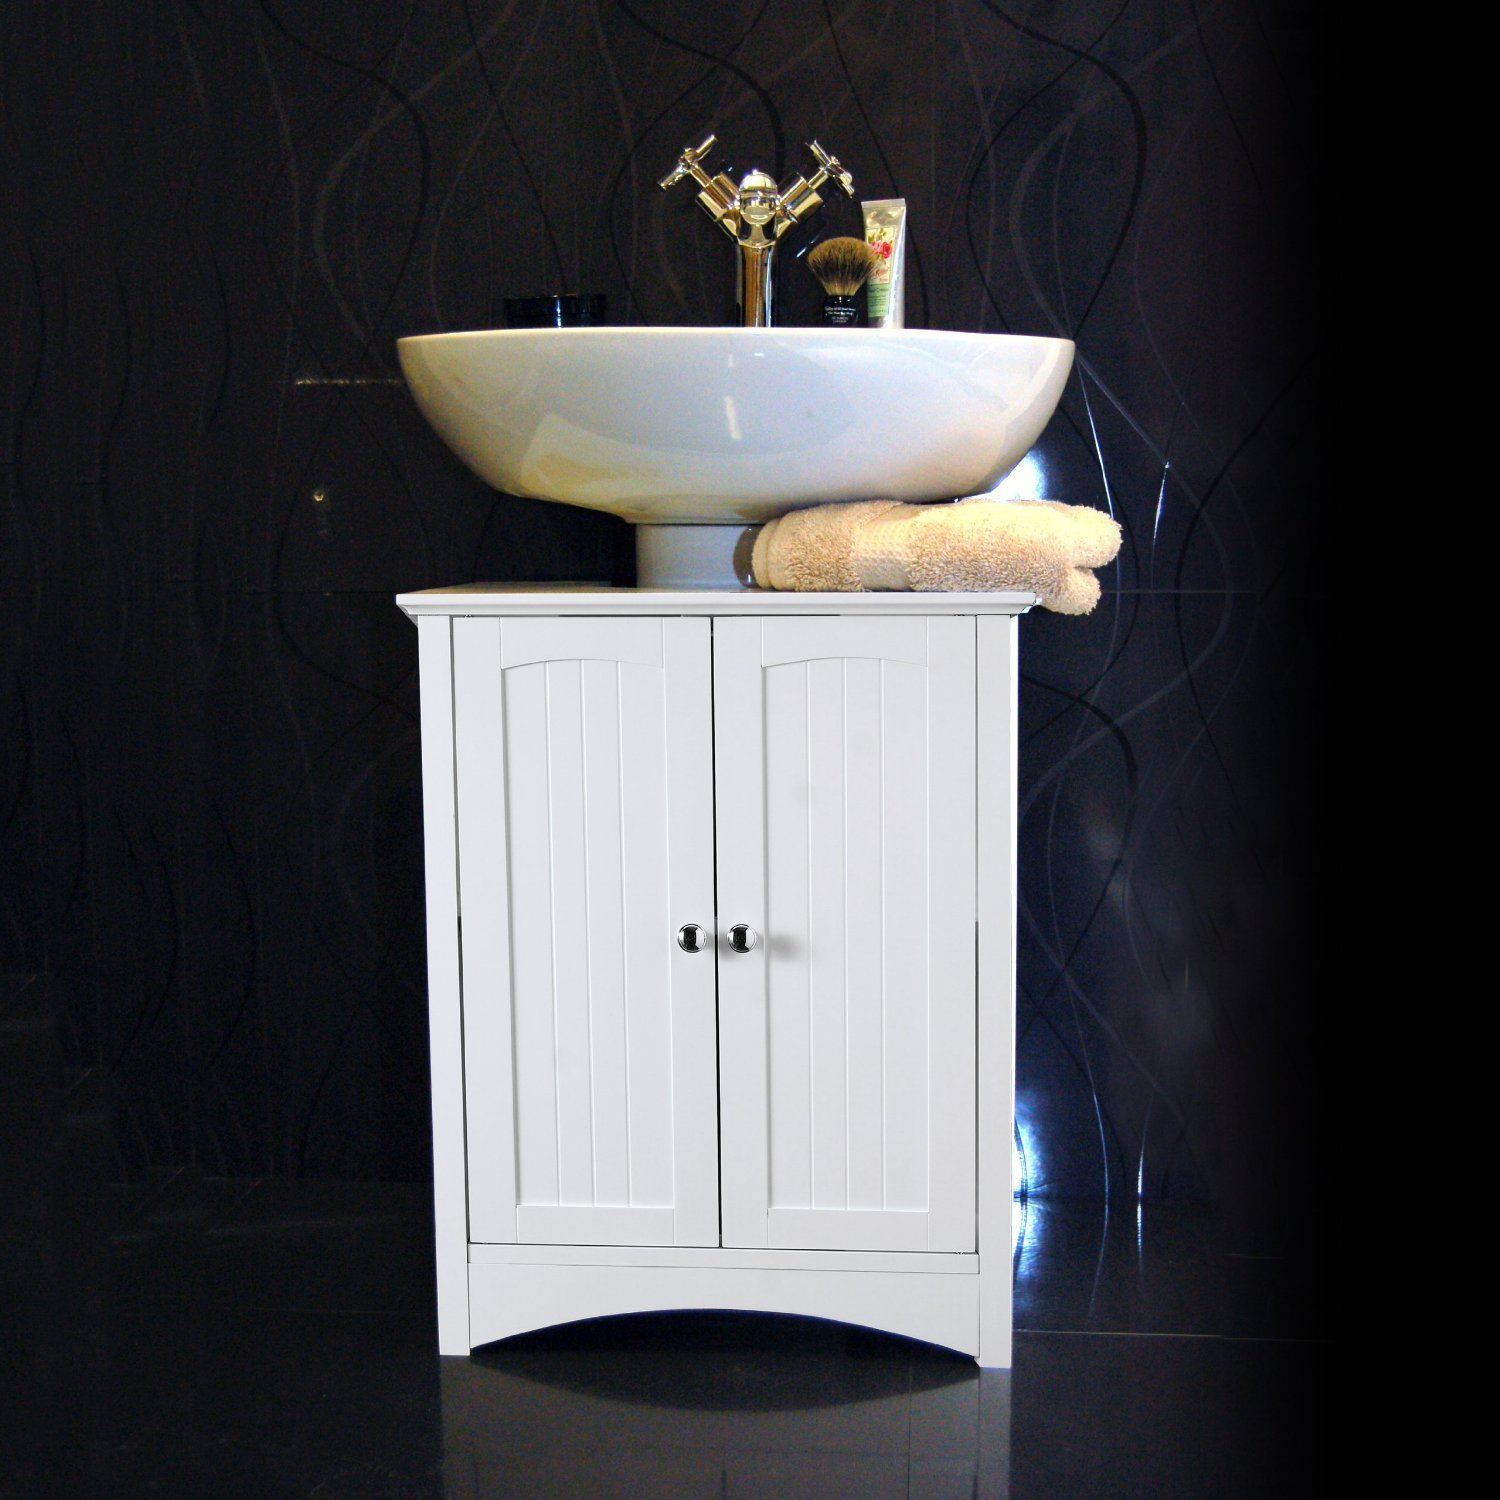 White Under Sink Bathroom Storage Cabinet: Amazon.co.uk: Kitchen U0026 Home